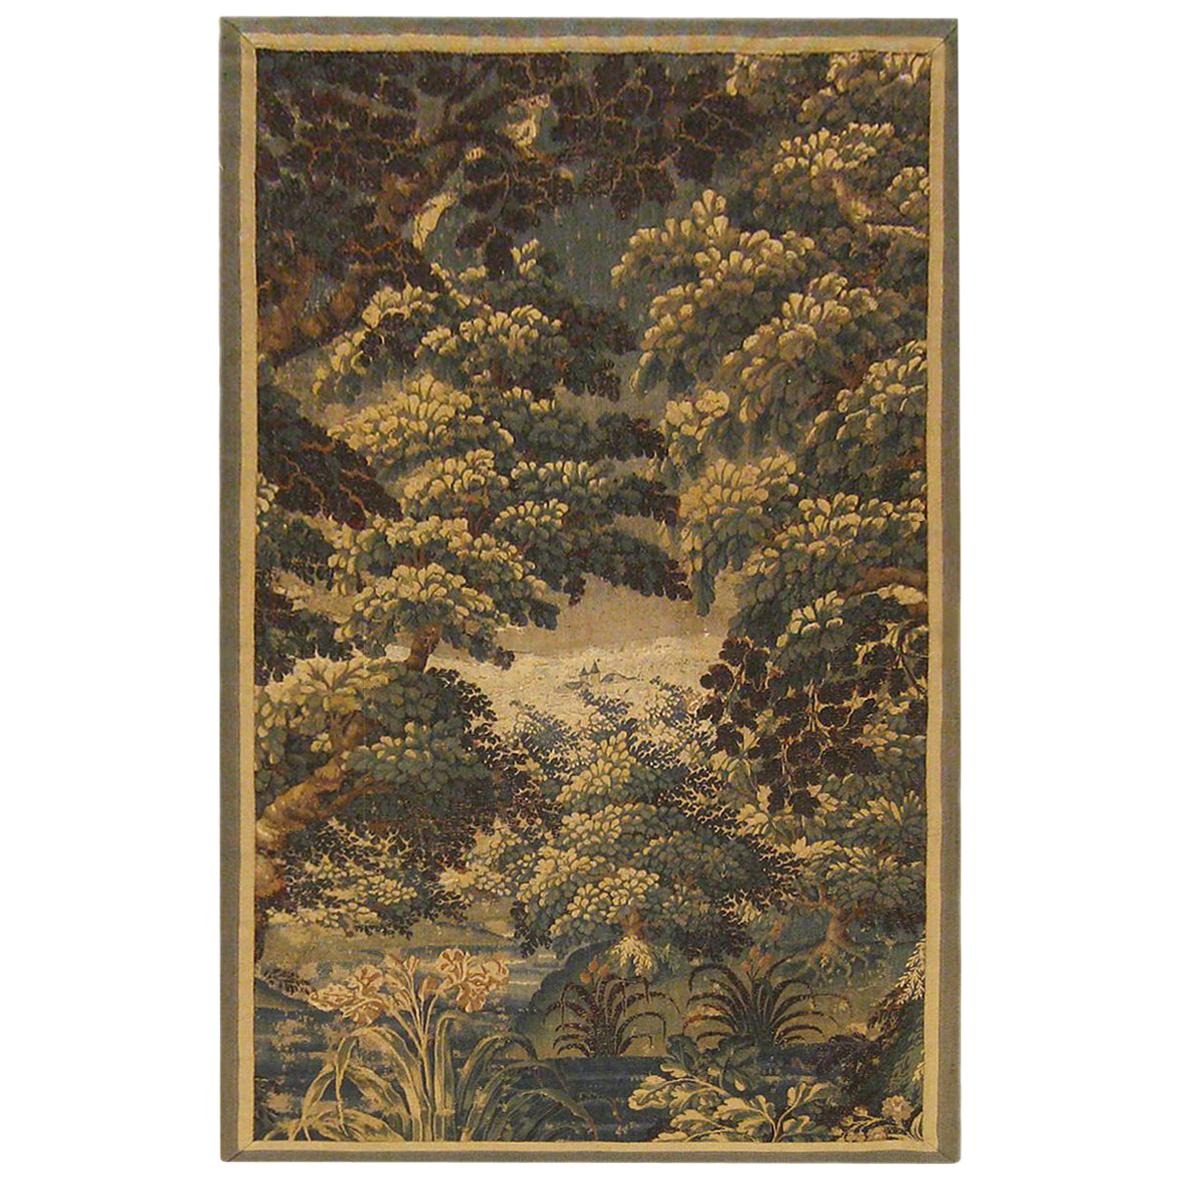 17th Century Flemish Verdure Landscape Tapestry, w/ a Forest, Trees, and Bushes